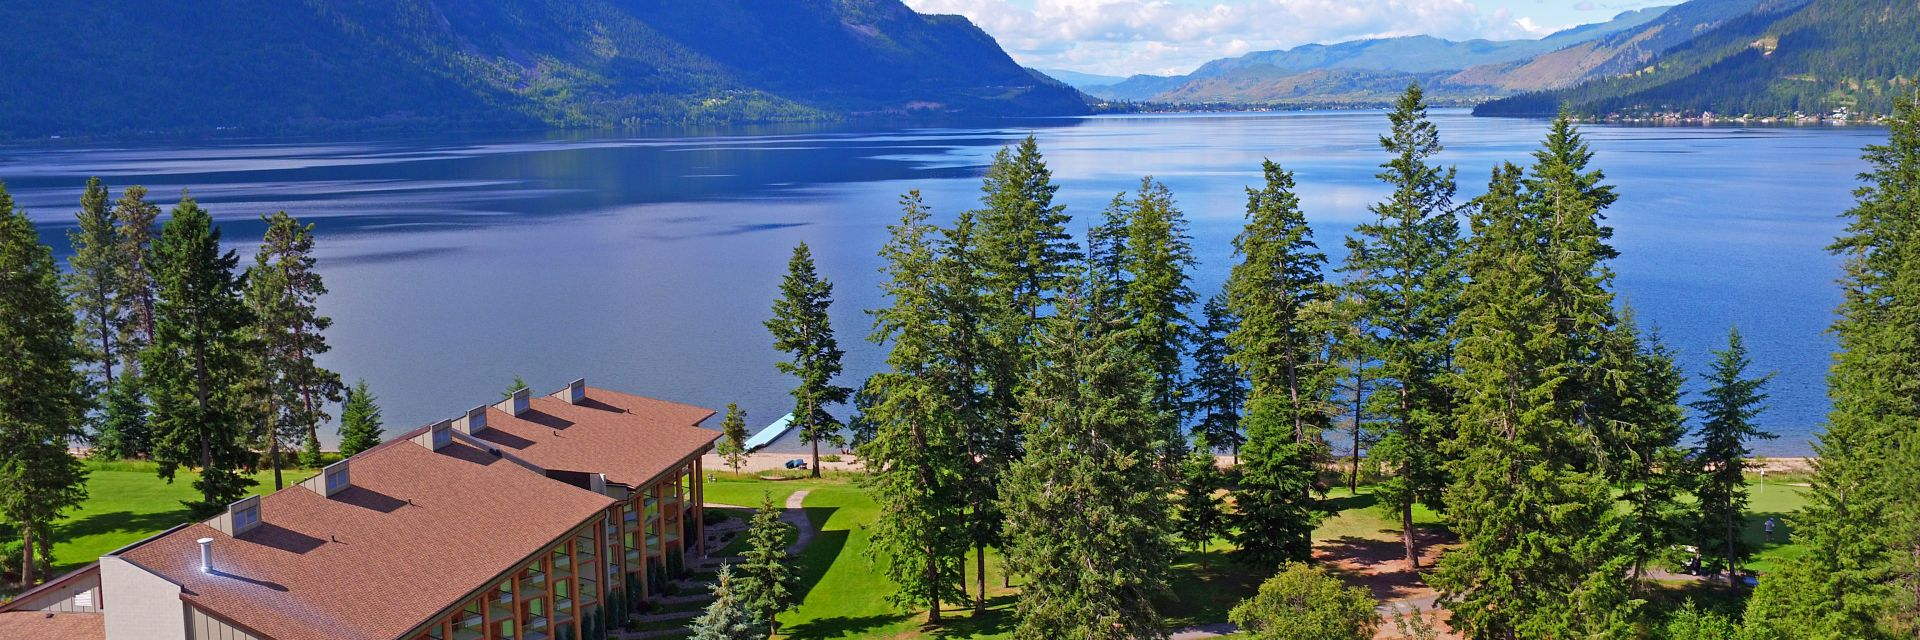 An aerial view of Little Schuswap Lake and Quaaout Lodge & Spa